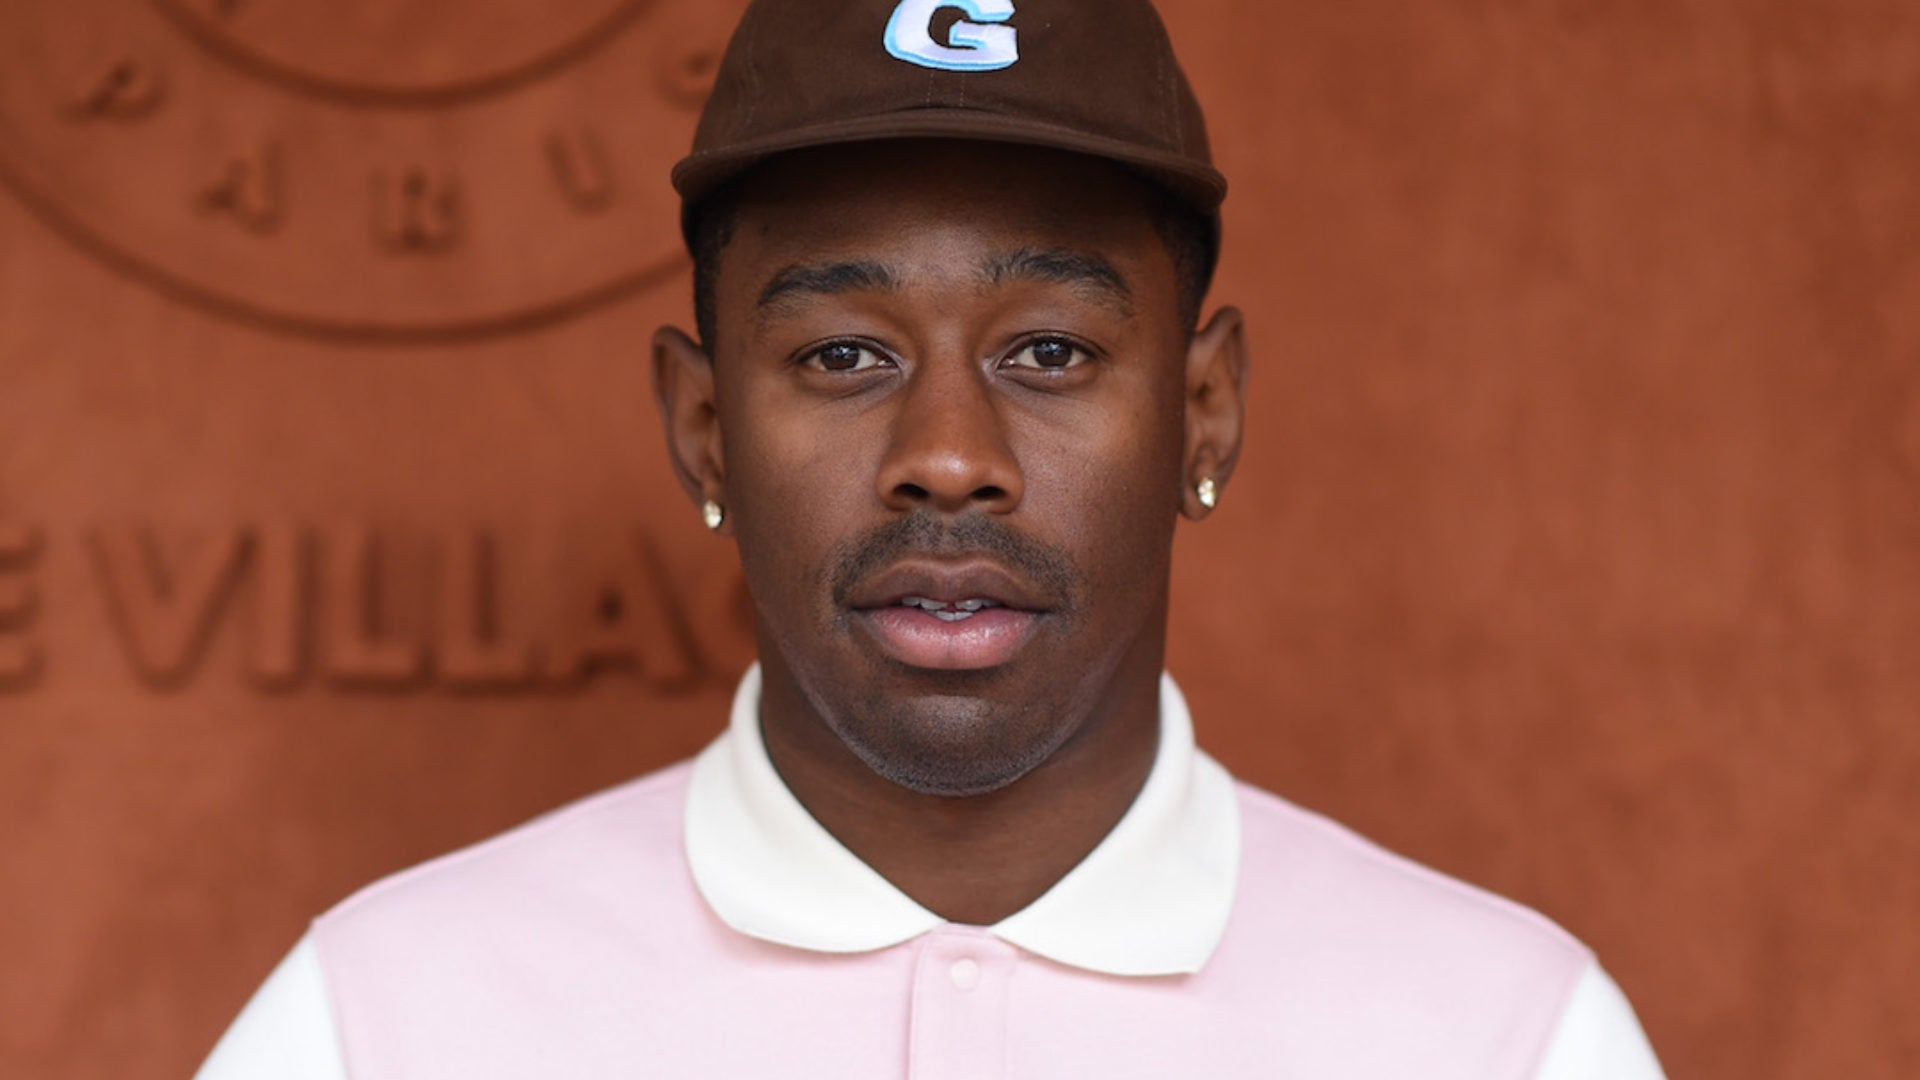 American Airlines Responds After Tyler The Creator Claims To Be